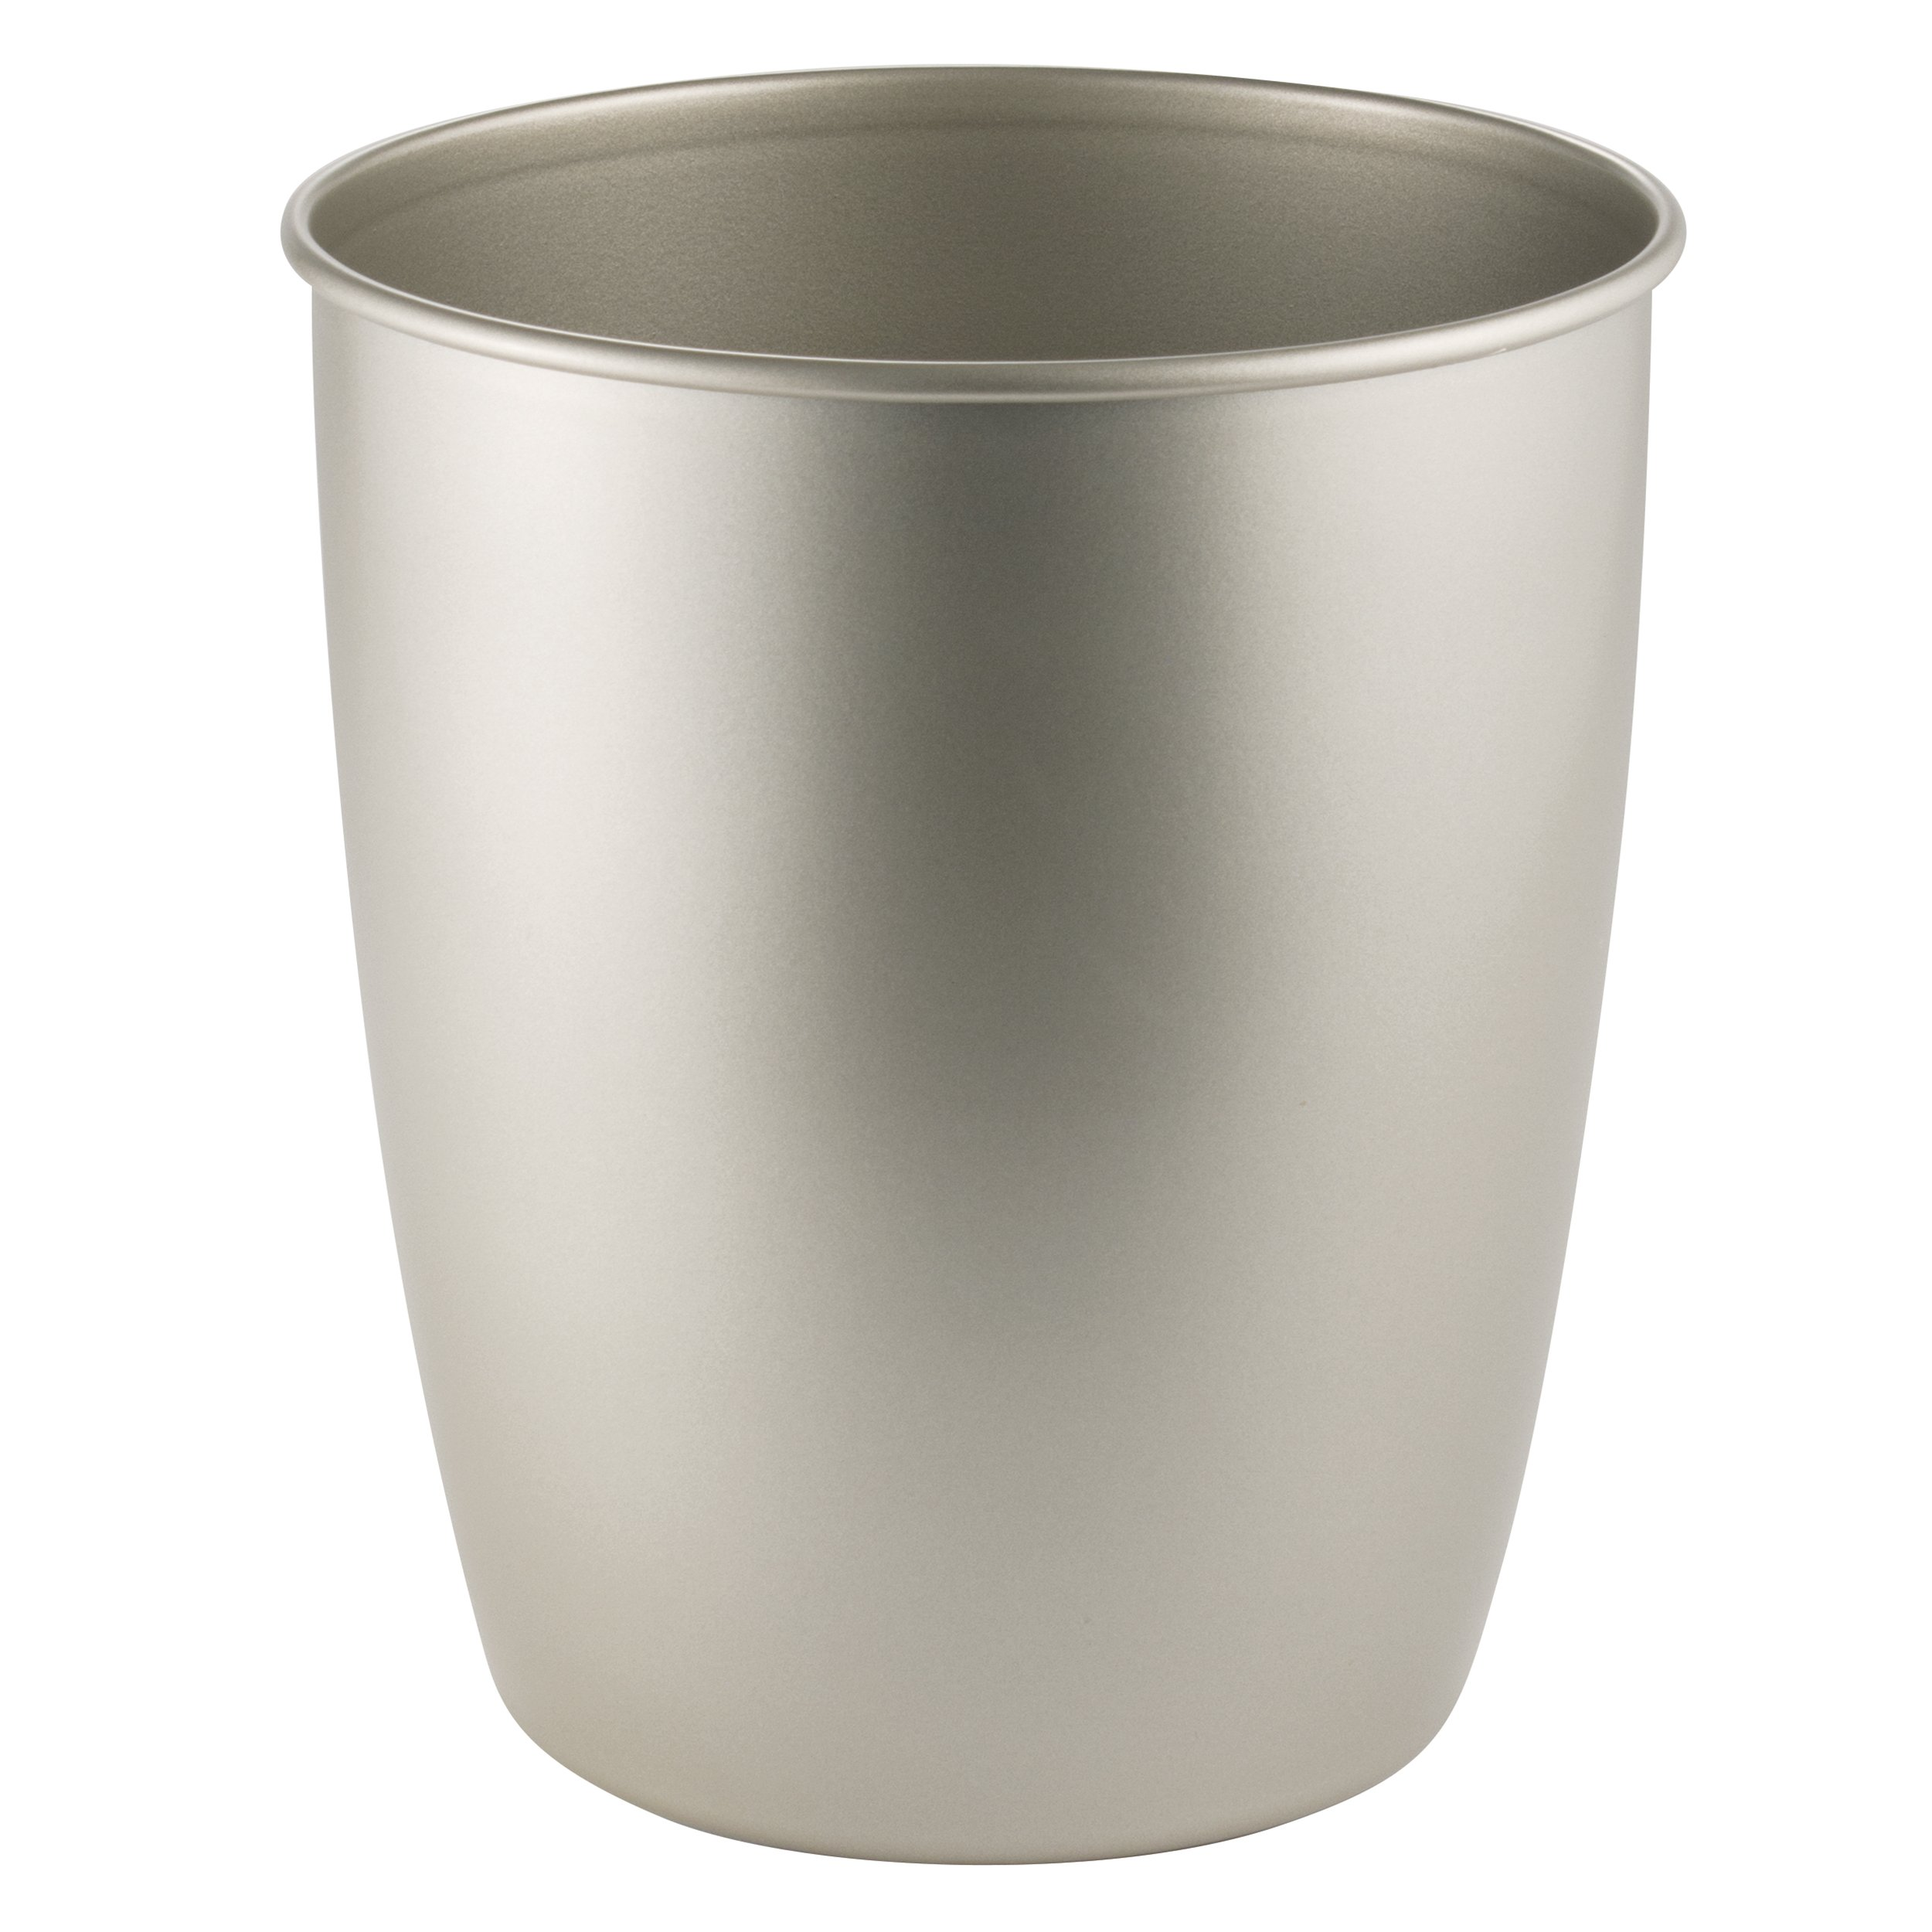 mDesign Round Metal Small Trash Can Wastebasket, Garbage Container Bin for Bathrooms, Powder Rooms, Kitchens, Home Offices - Durable Steel with Satin Finish